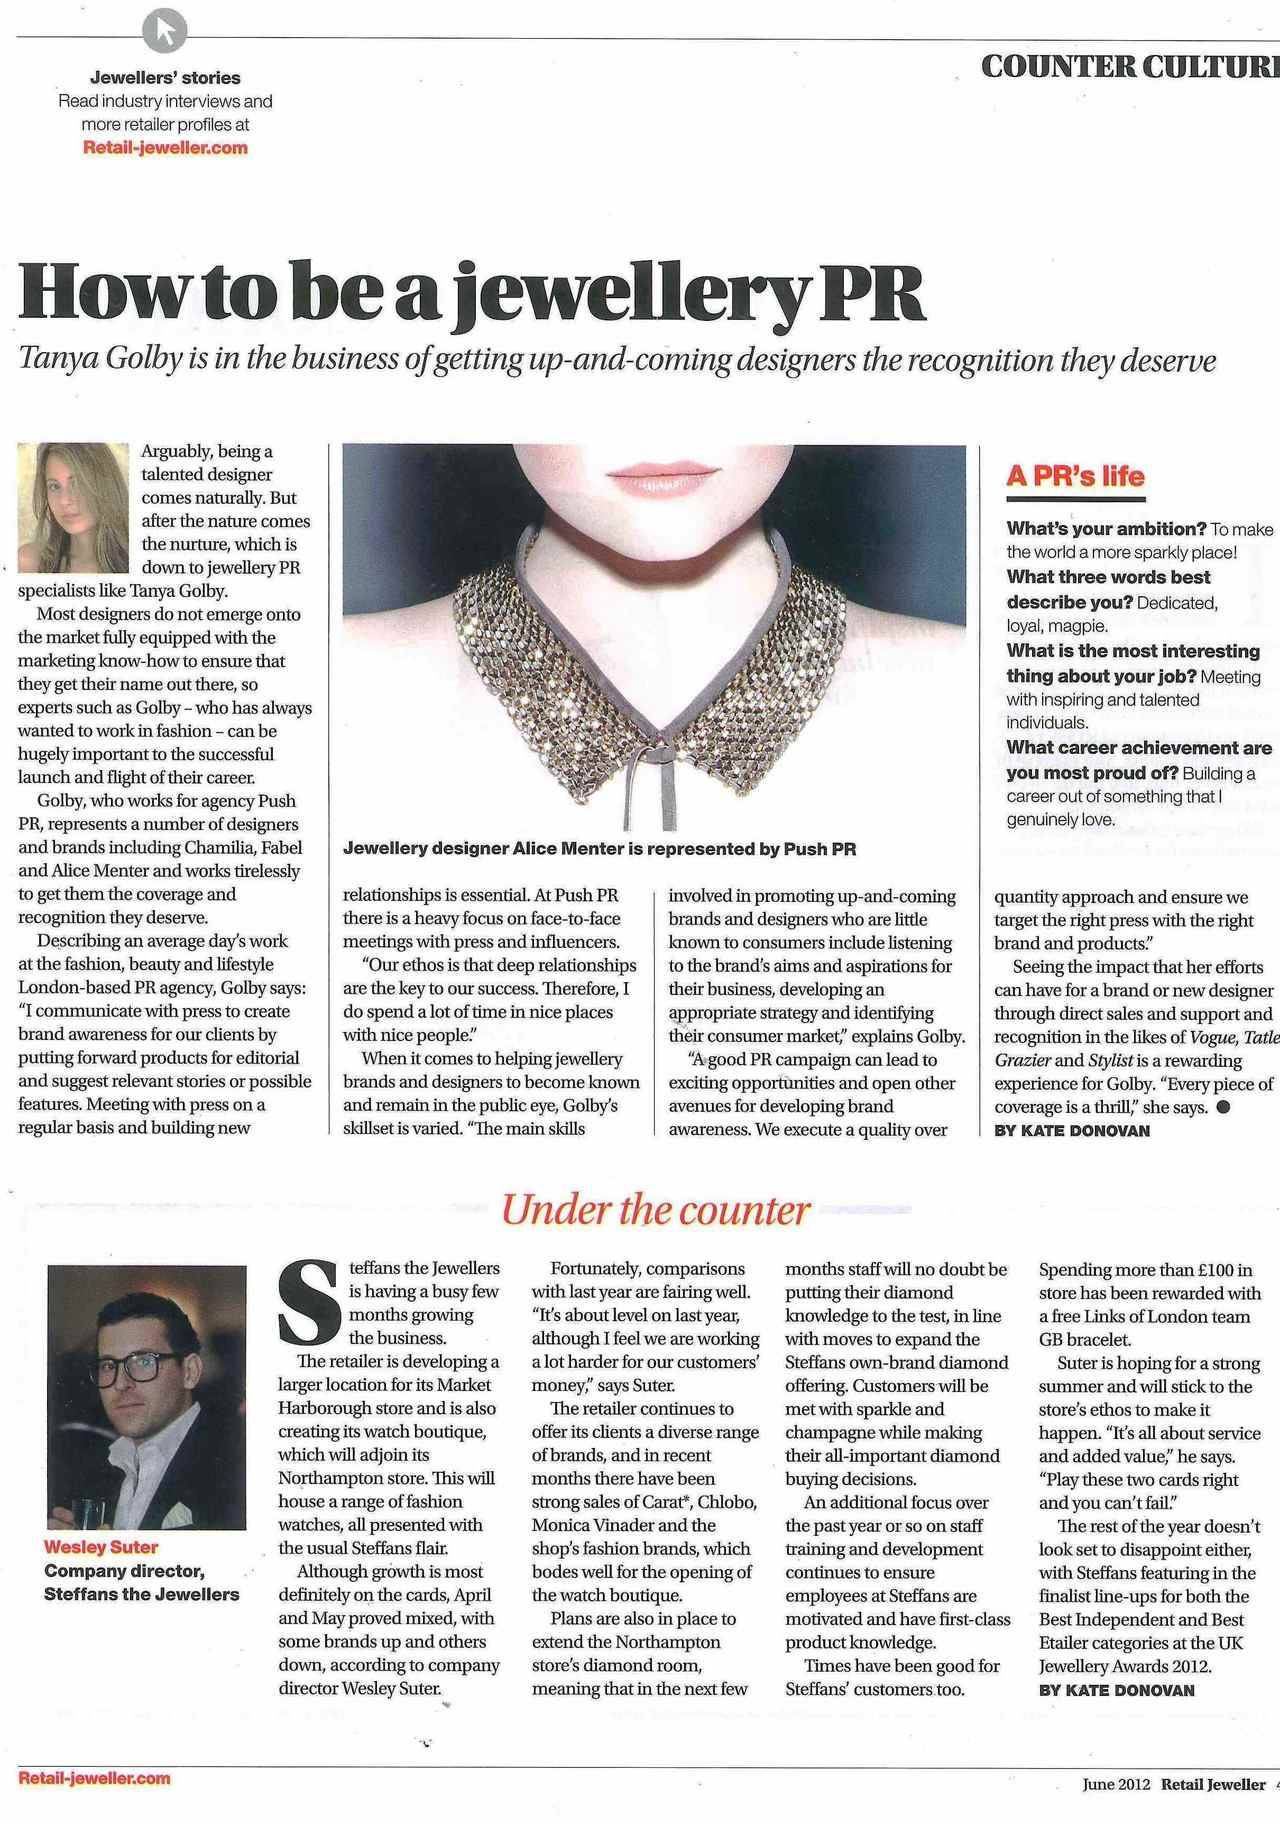 Tanya Golby for Push PR in Retail Jeweller